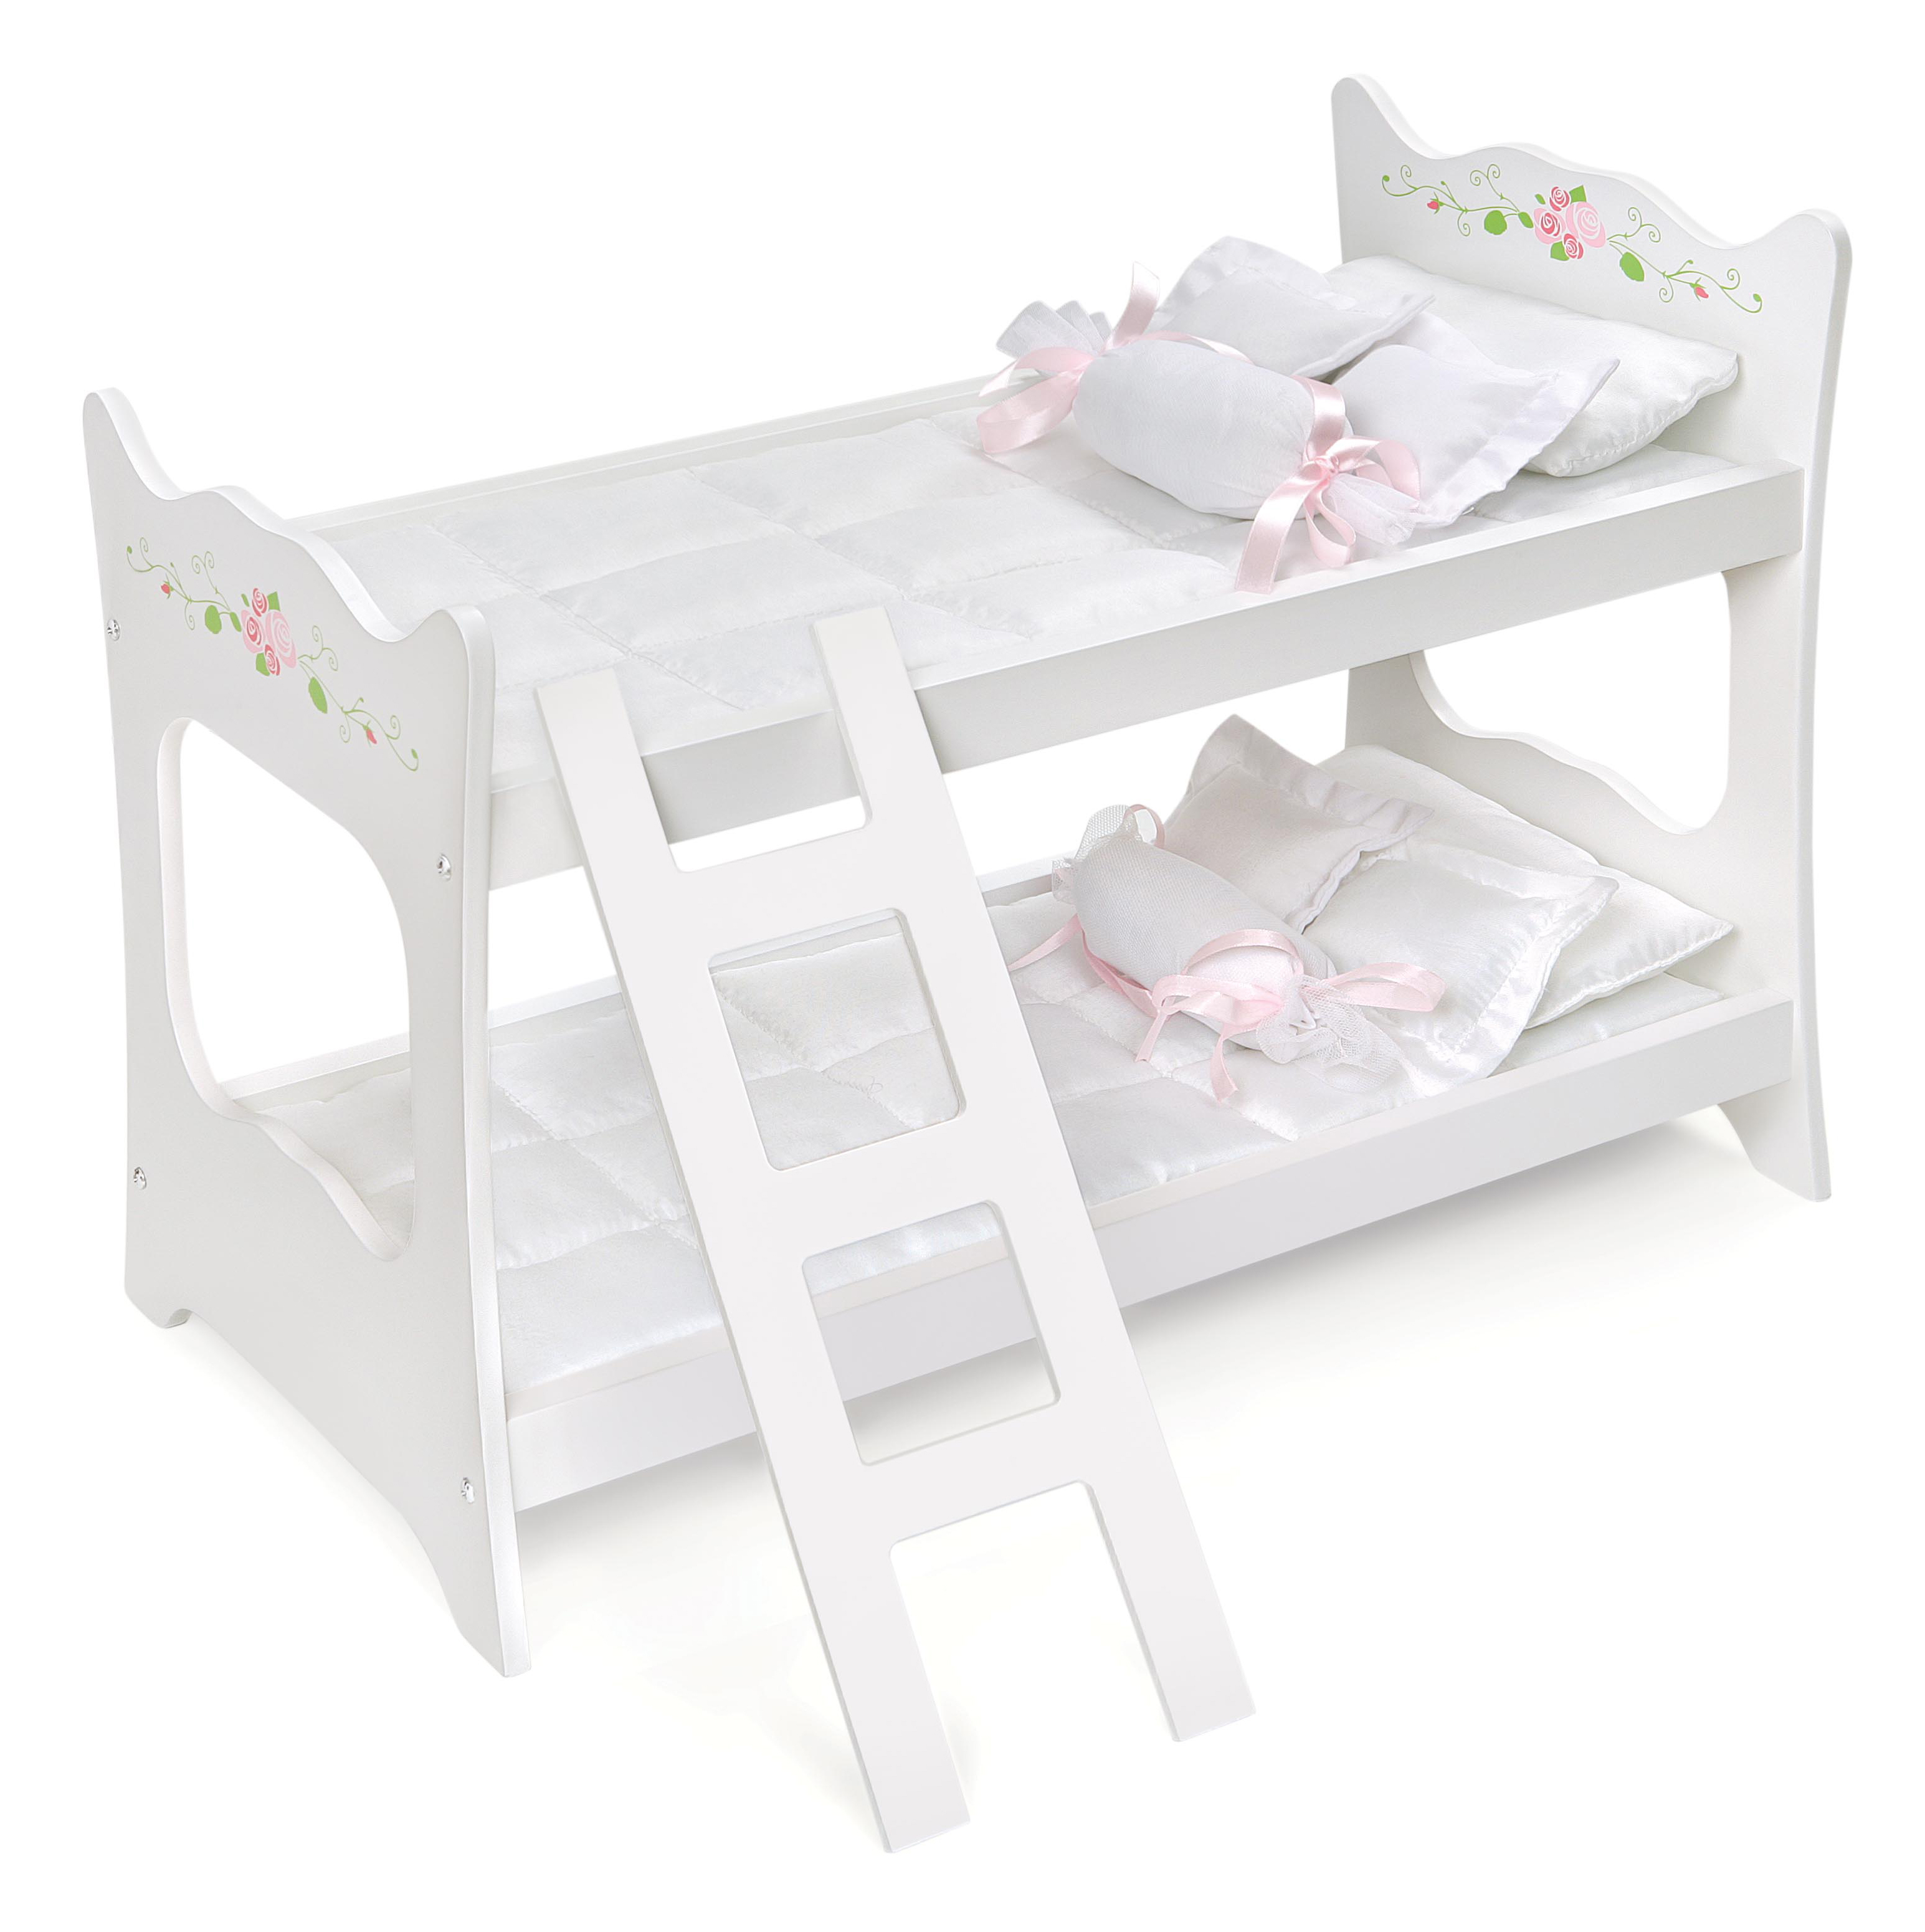 Badger Basket Doll Bunk Bed With Ladder And Bedding   White Rose   Fits American  Girl